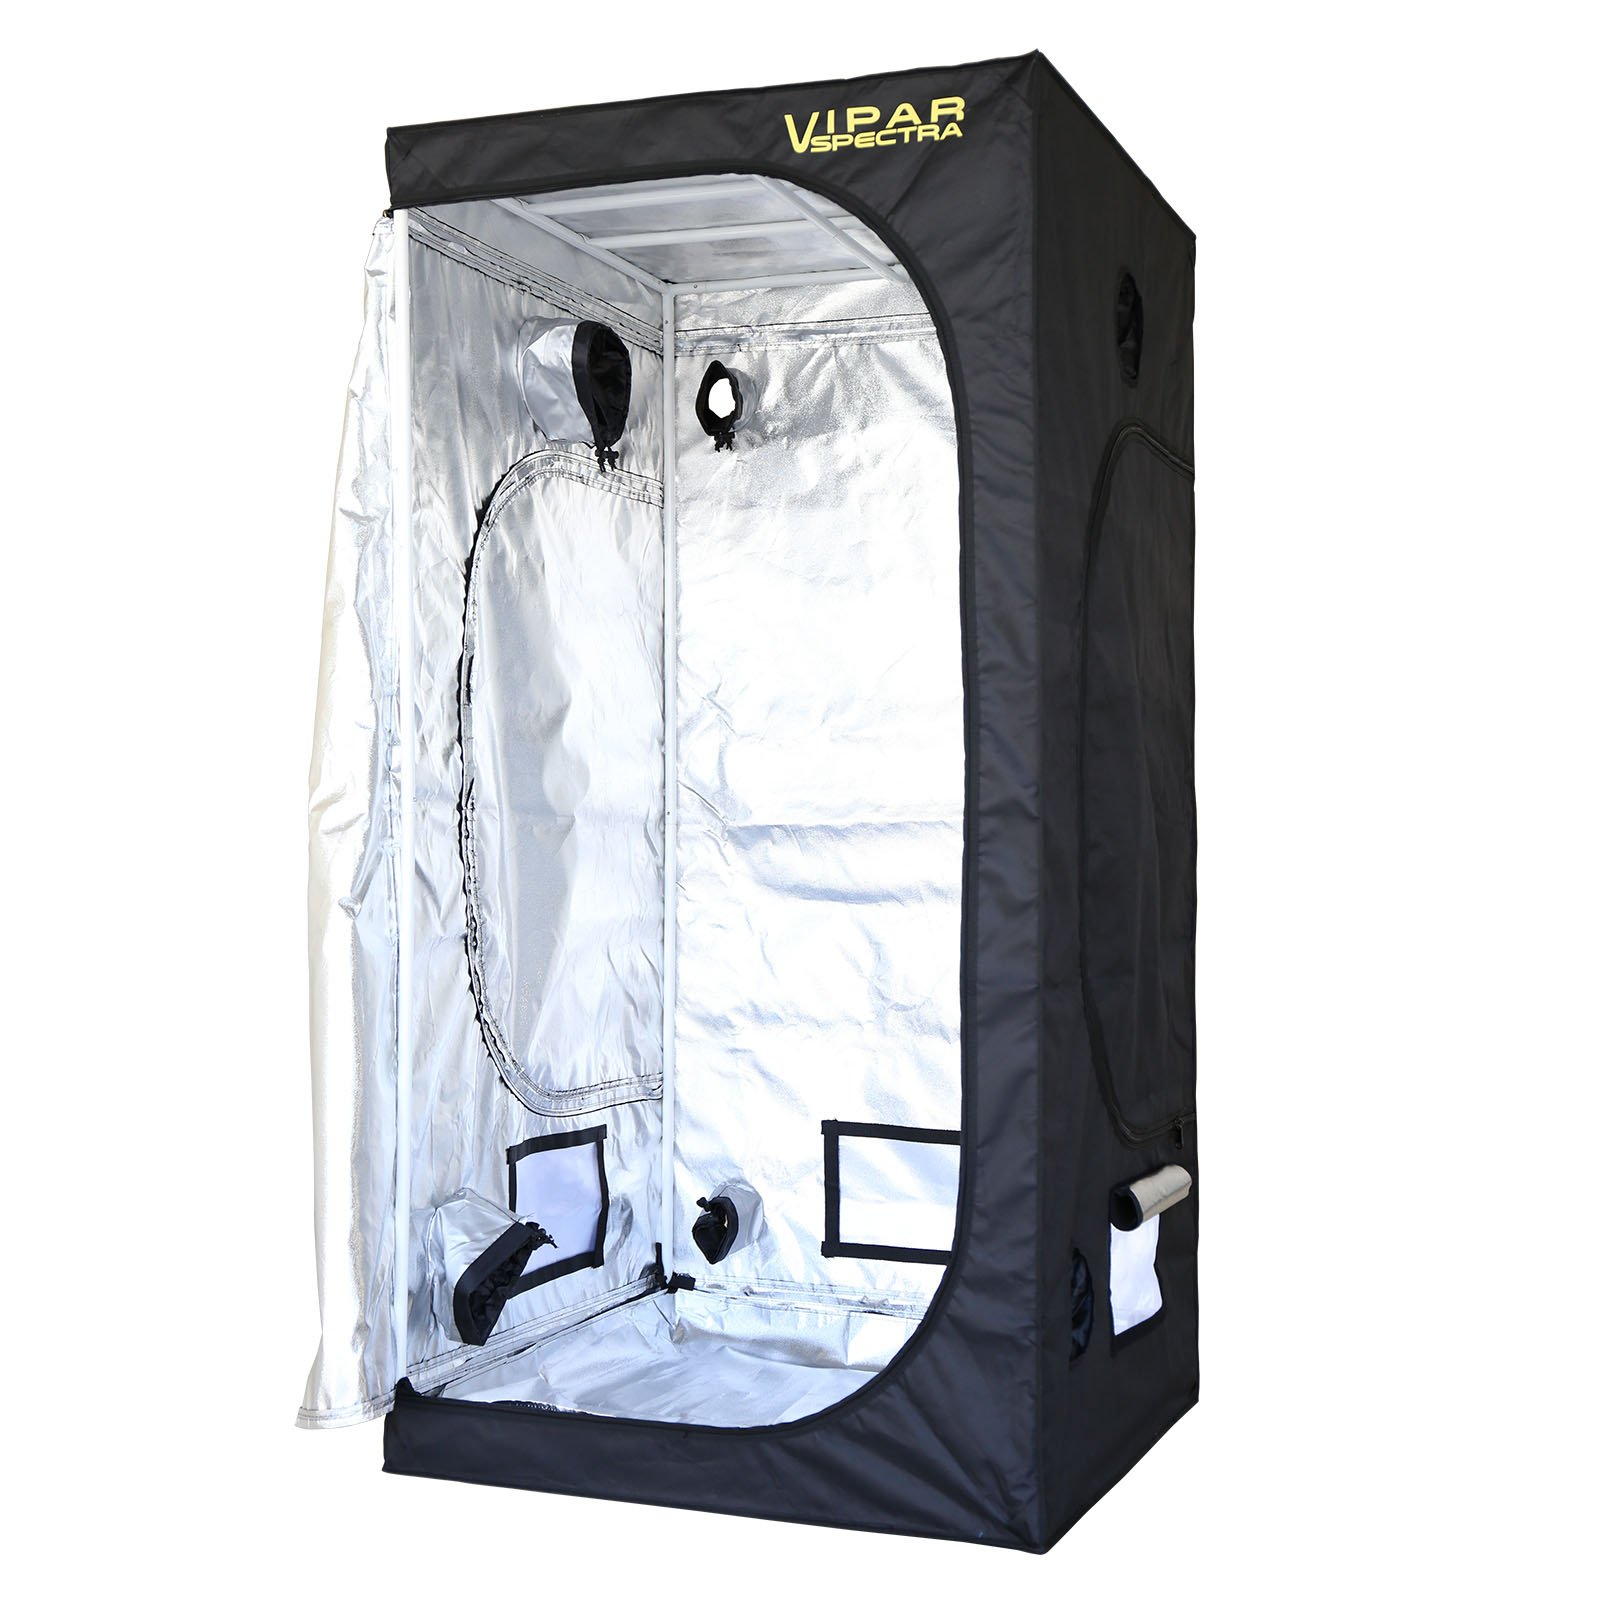 VIPARSPECTRA 36''x36''x72'' Reflective 600D Mylar Hydroponic Grow Tent for Indoor Plant Growing 3'x3'